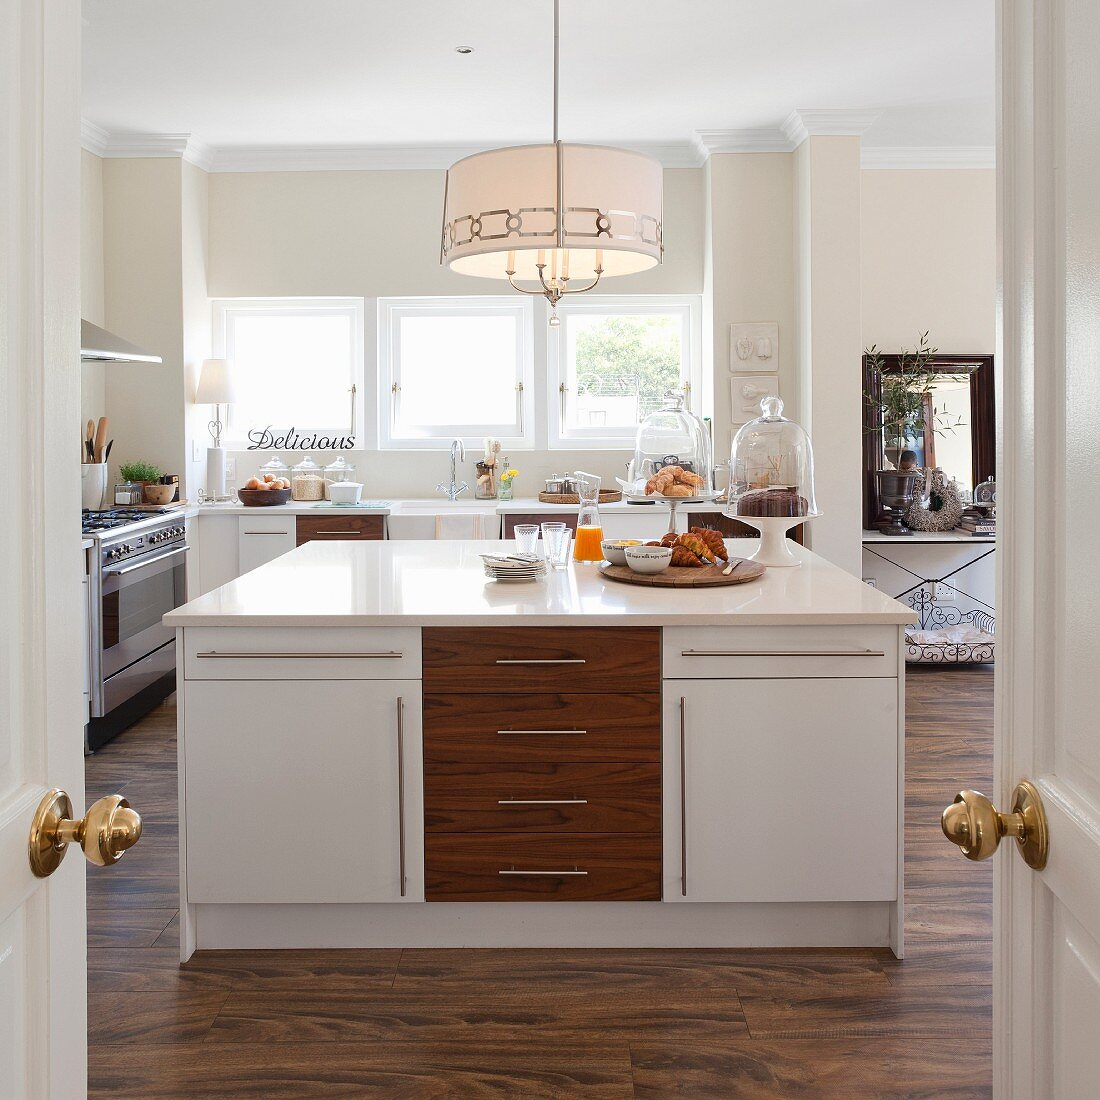 View through open double doors into open-plan kitchen with white and wooden island counter